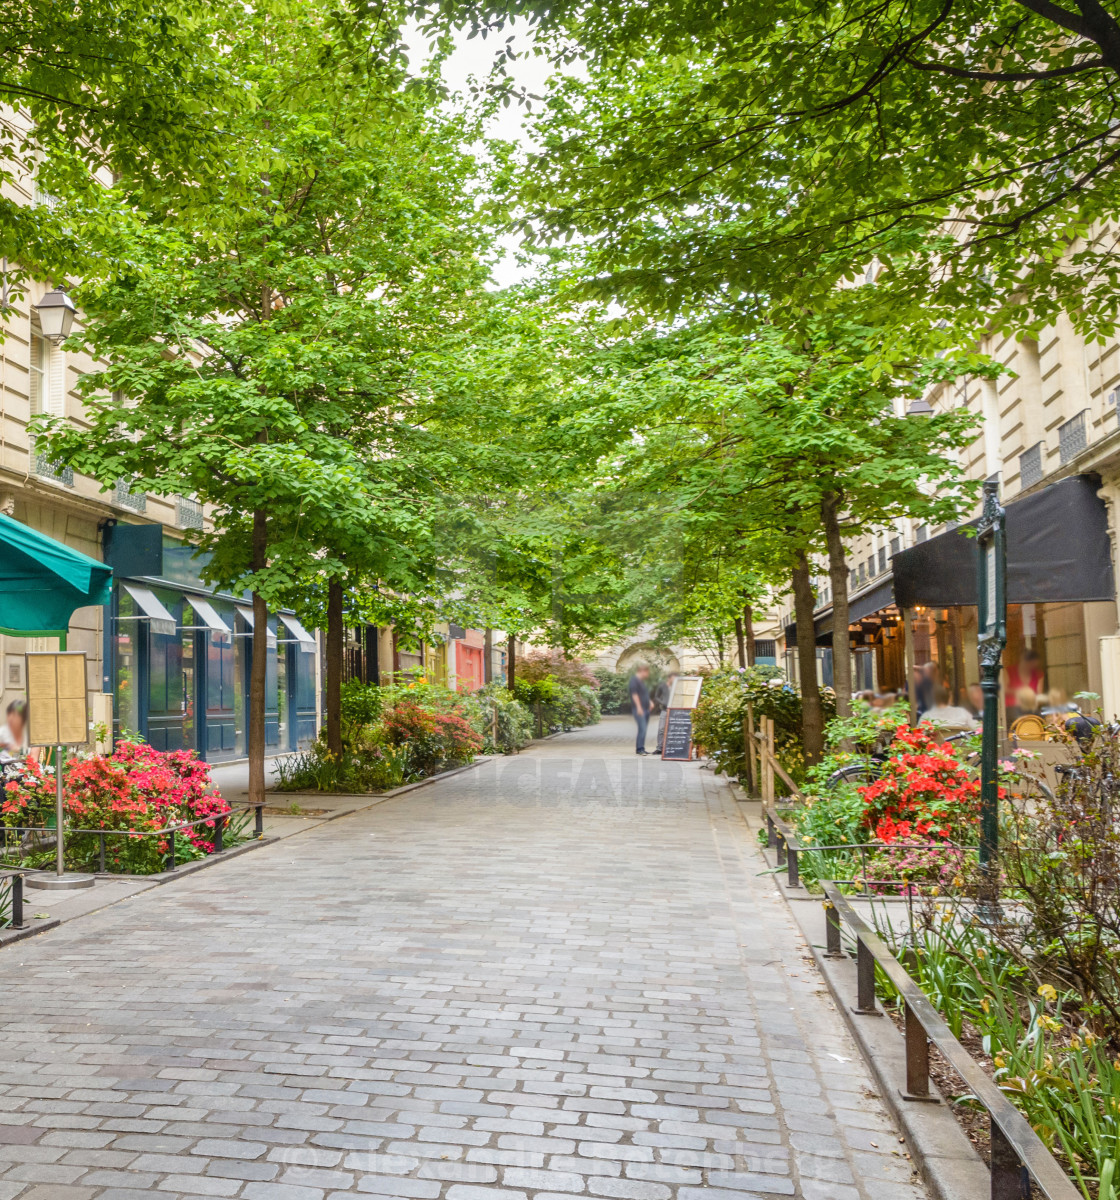 A Quiet Street With Restaurants In The Bohemian Marais